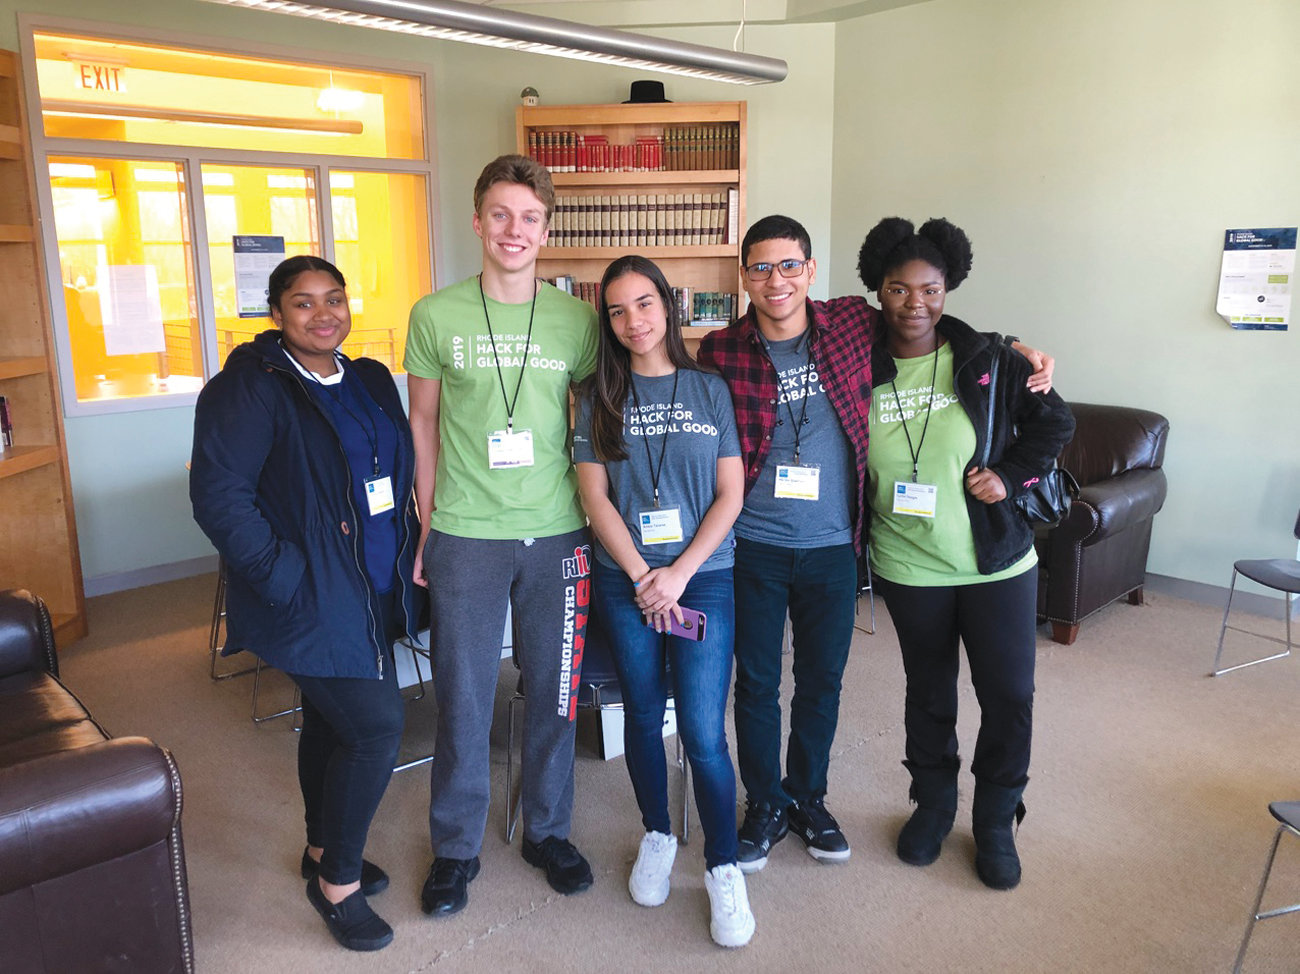 TEAMING UP TO SOLVE PROBLEMS: Hope High School junior Omayra Corporan (left) is joined by Rocky Hill senior Courtlandt Meyerson and Hope High School students Ambar Tavarez, Hector Guerrero and Lydia O. Watkins for a photo.